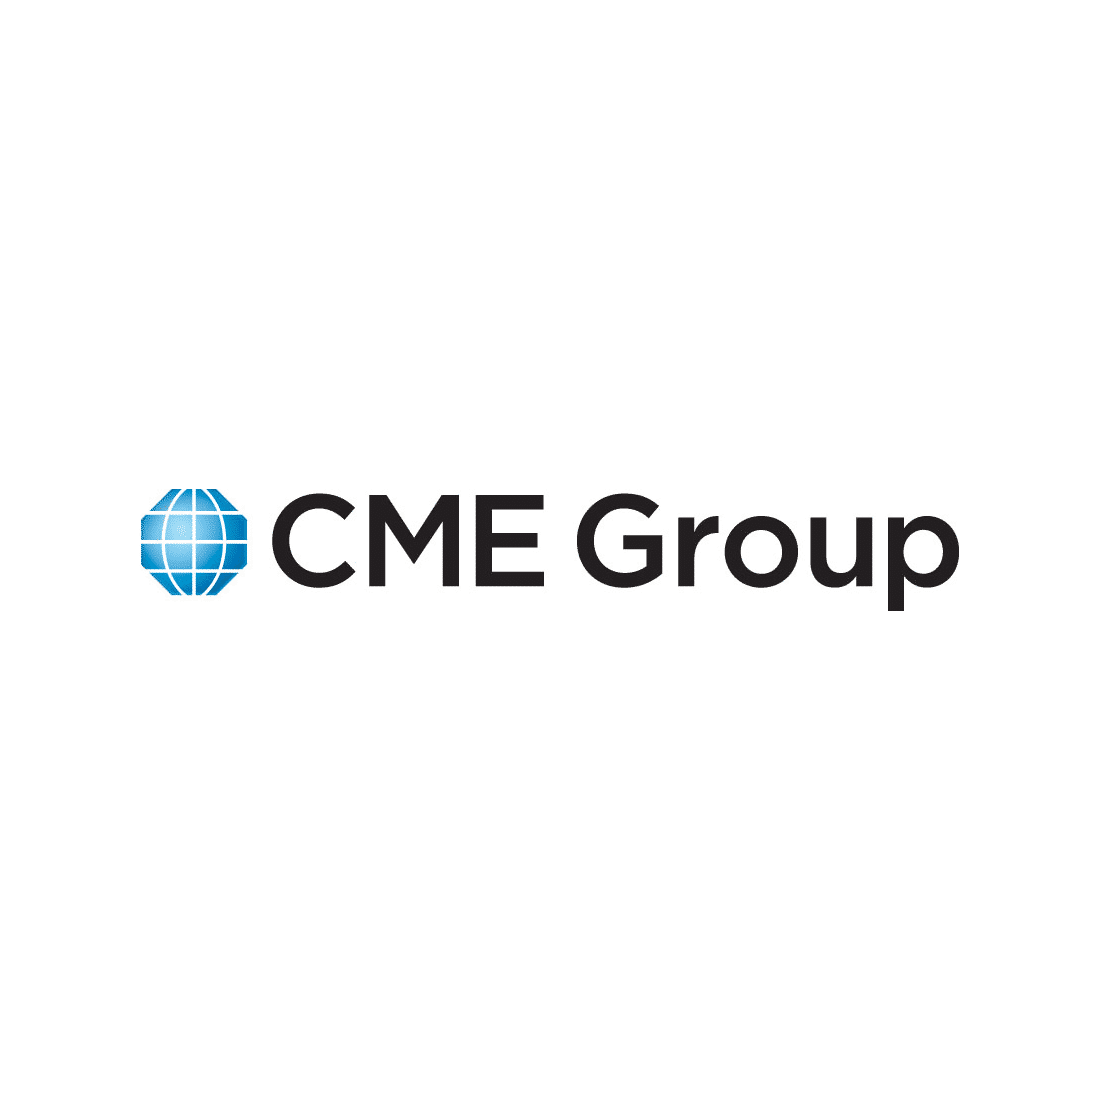 Average FX Trading Volume Rose by 3% at CME Group in December but Overall down 9% in 2014